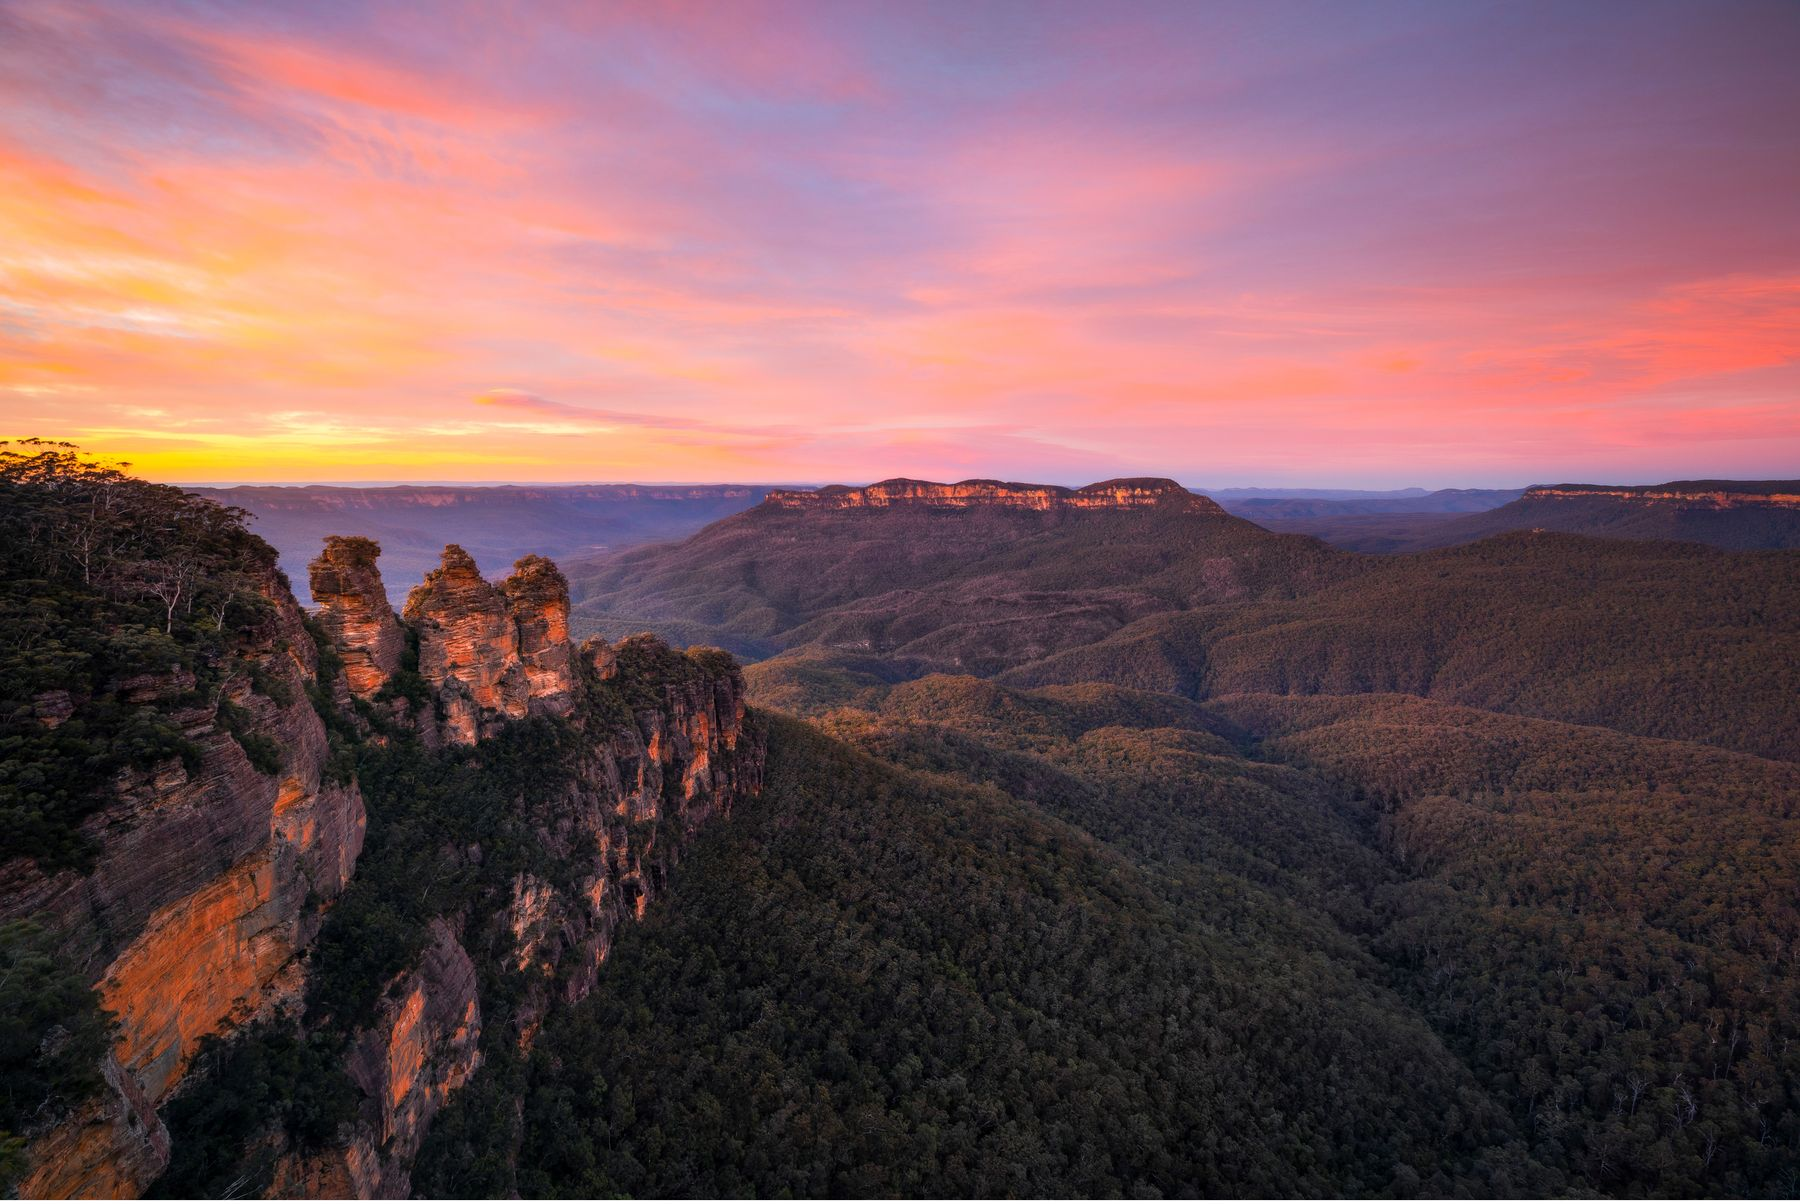 Staycation ideas: Blue Mountains, NSW